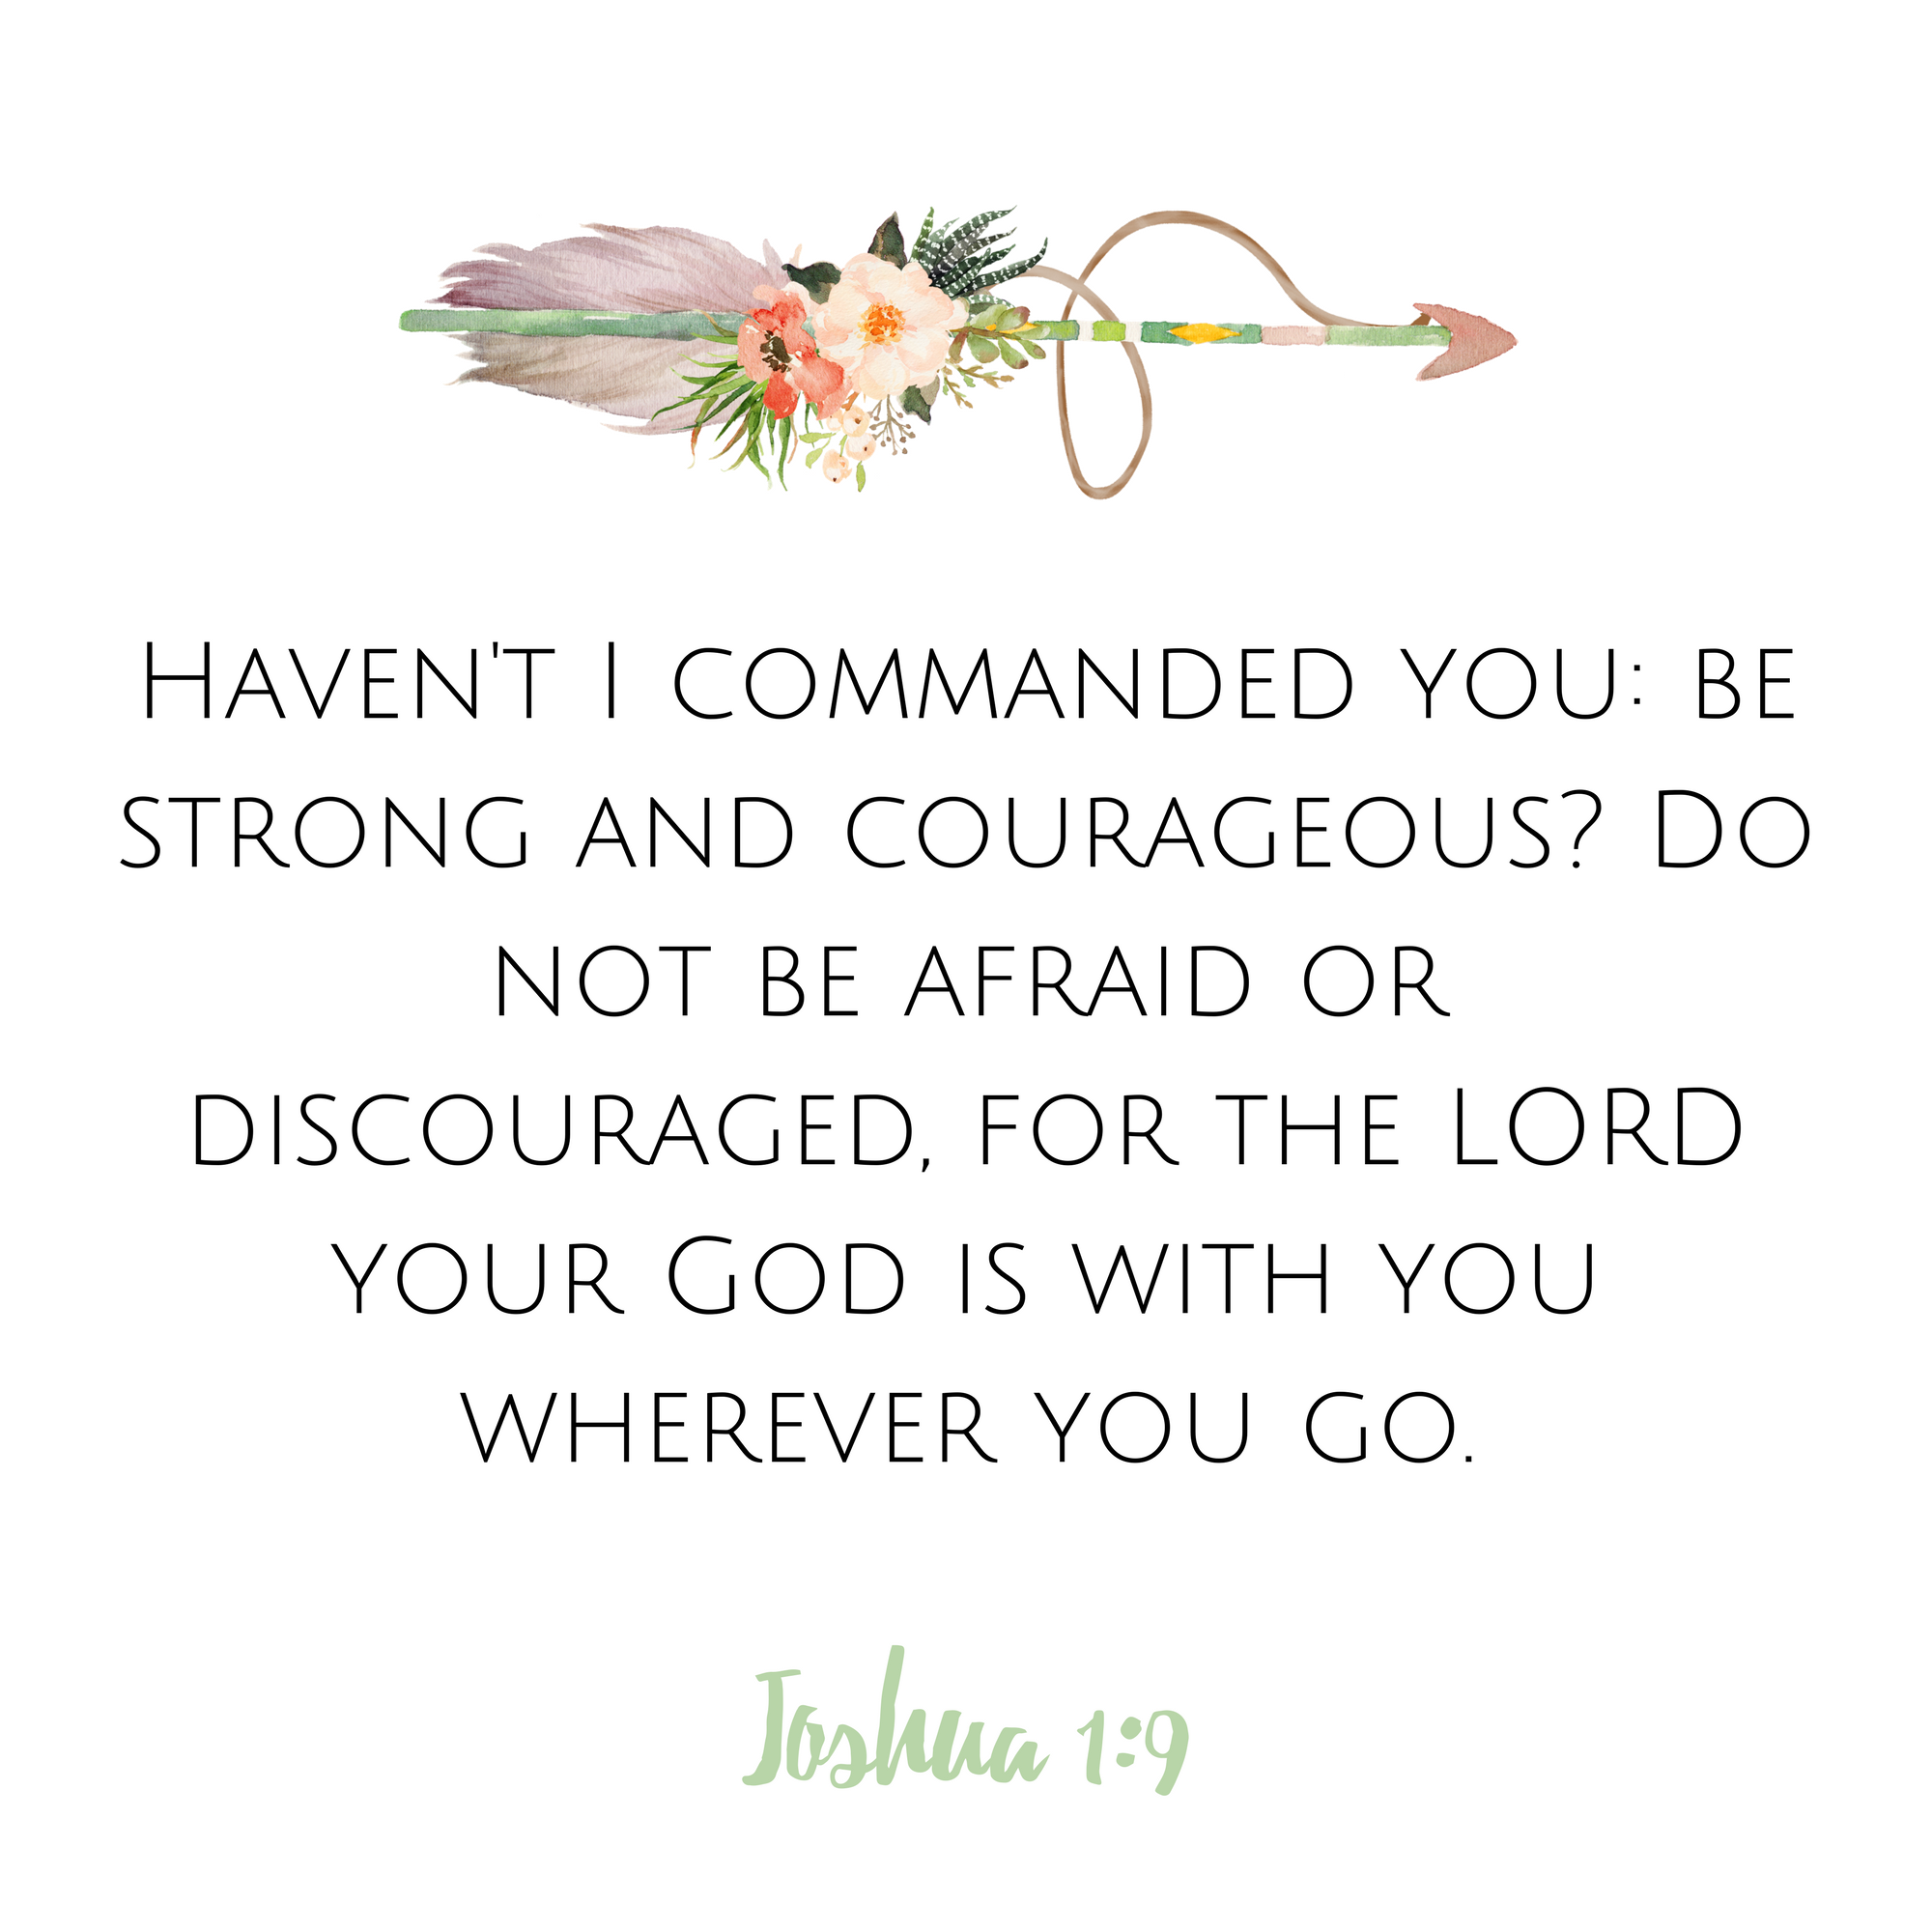 joshua 1 9 scripture card ready study www therescuedletters com